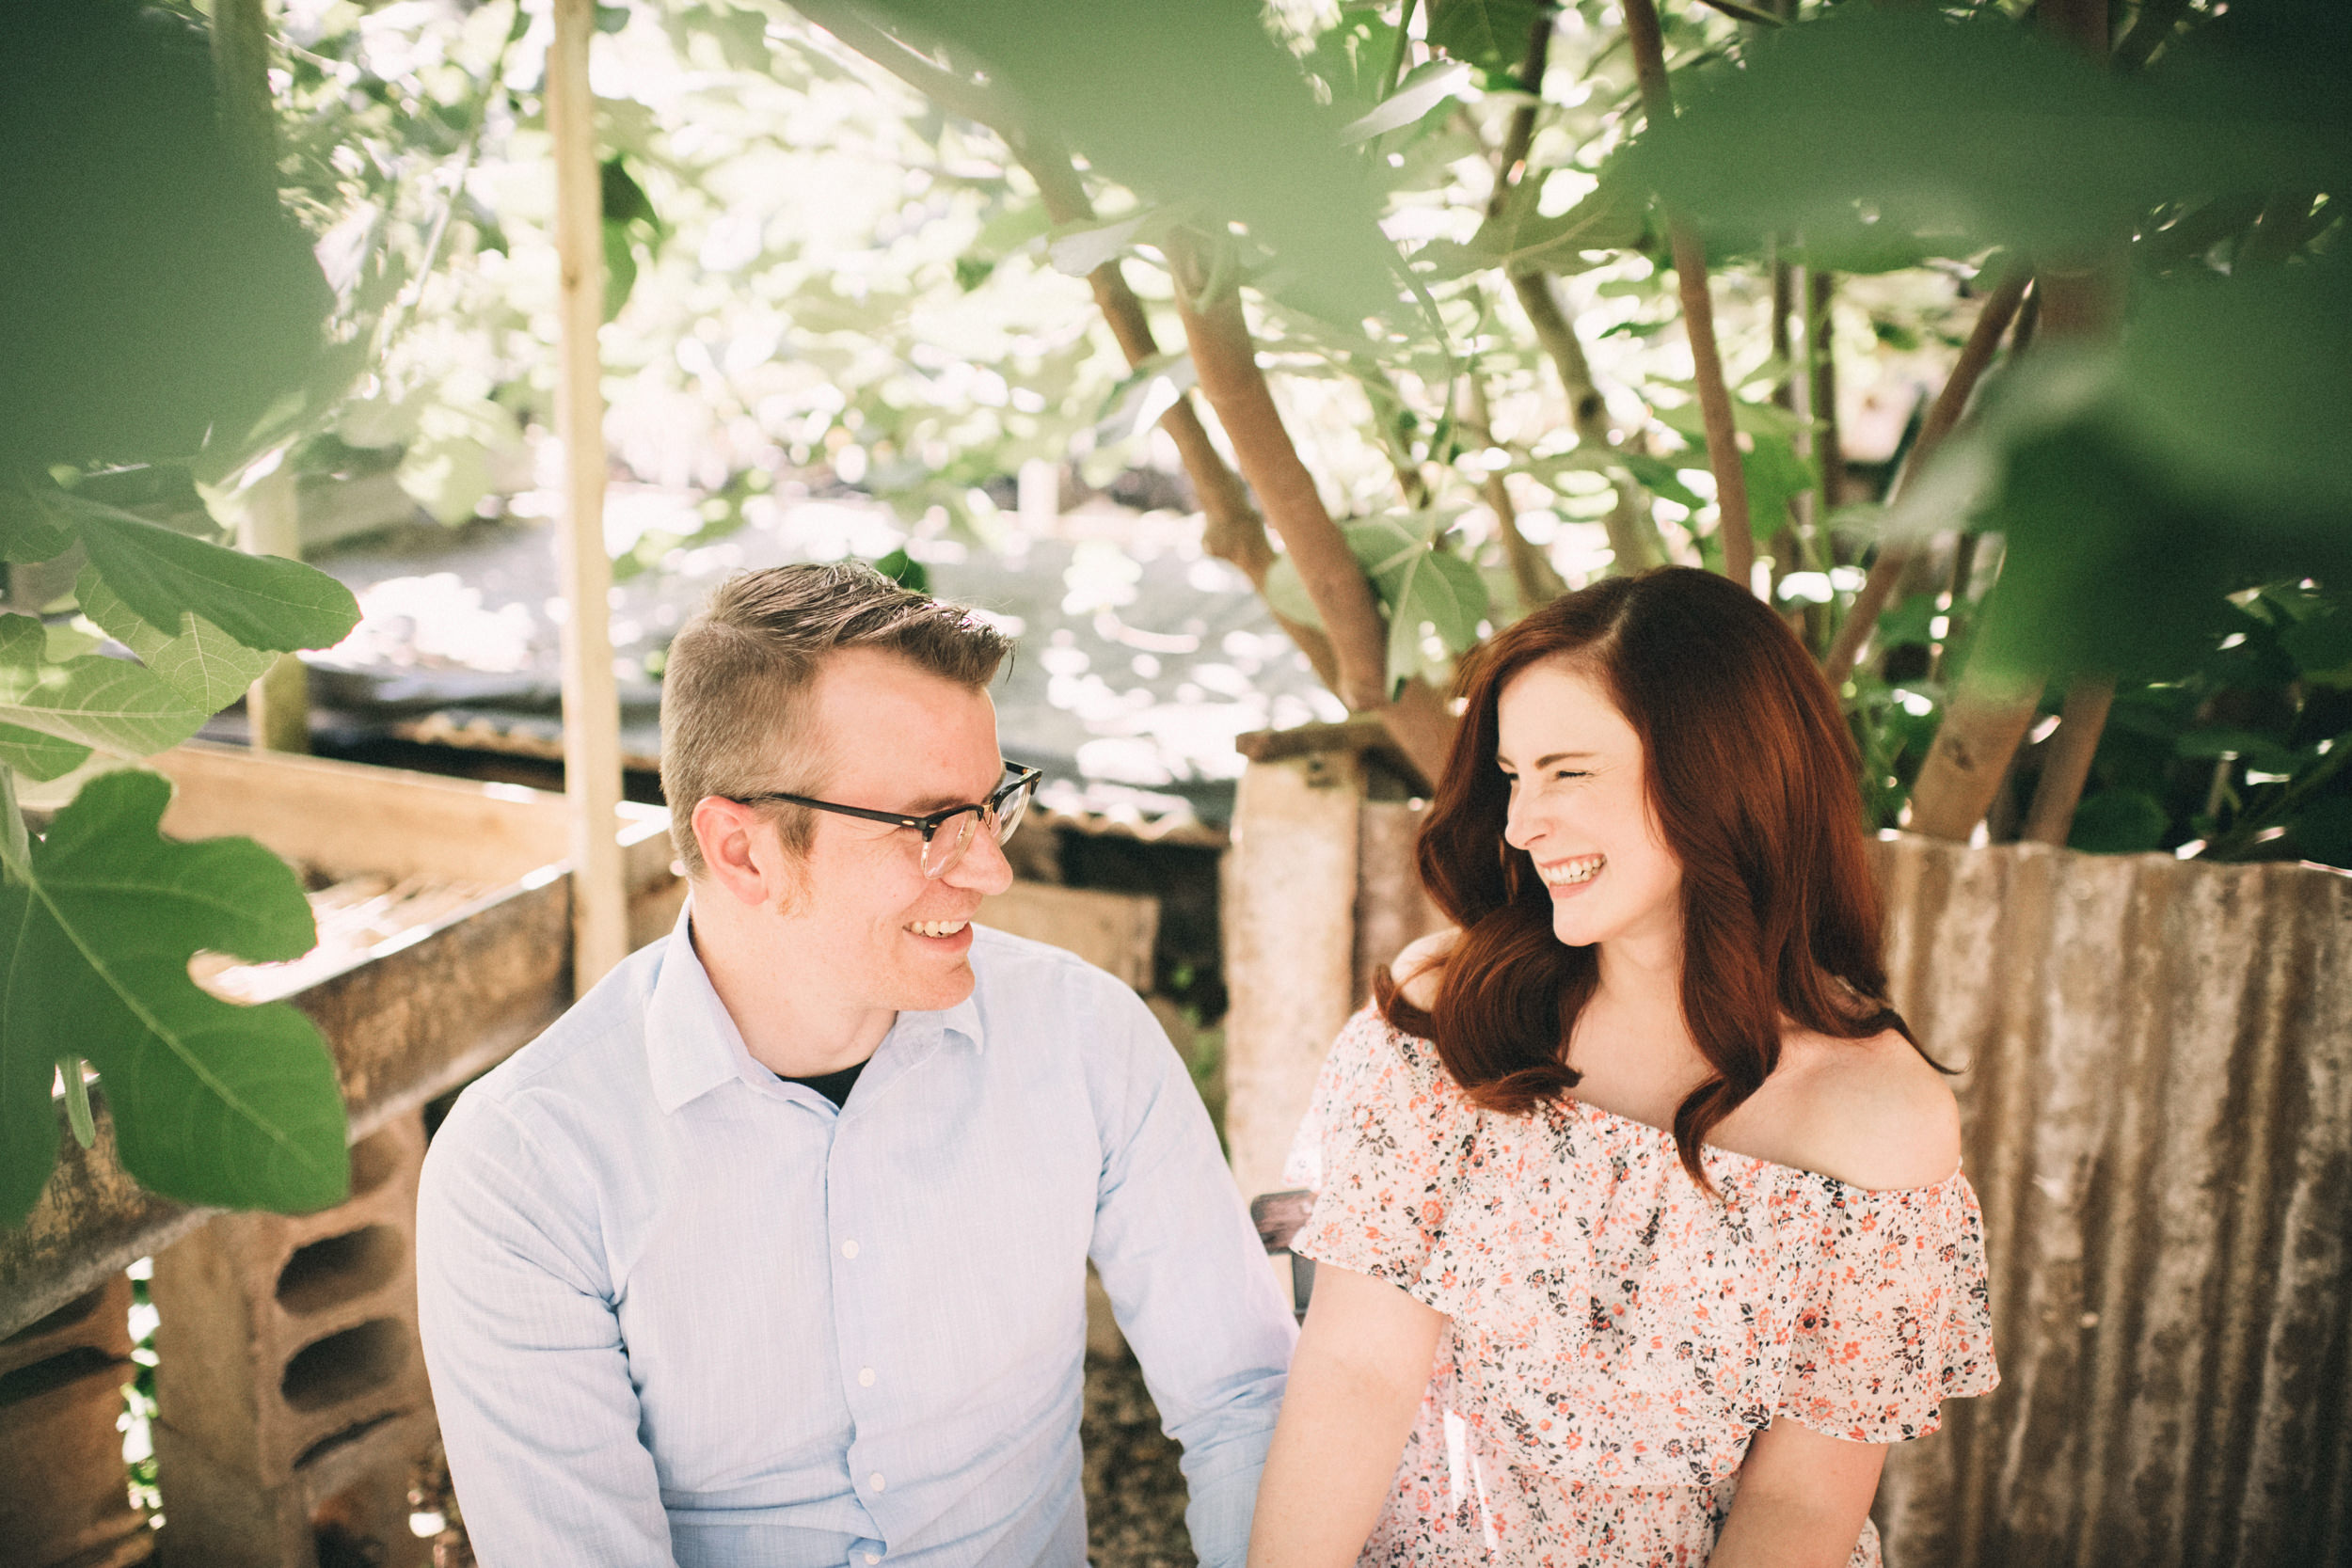 stephanie-brandon-sarah-katherine-davis-photographer-greenhouse-engagement-session-kentucky-120.jpg